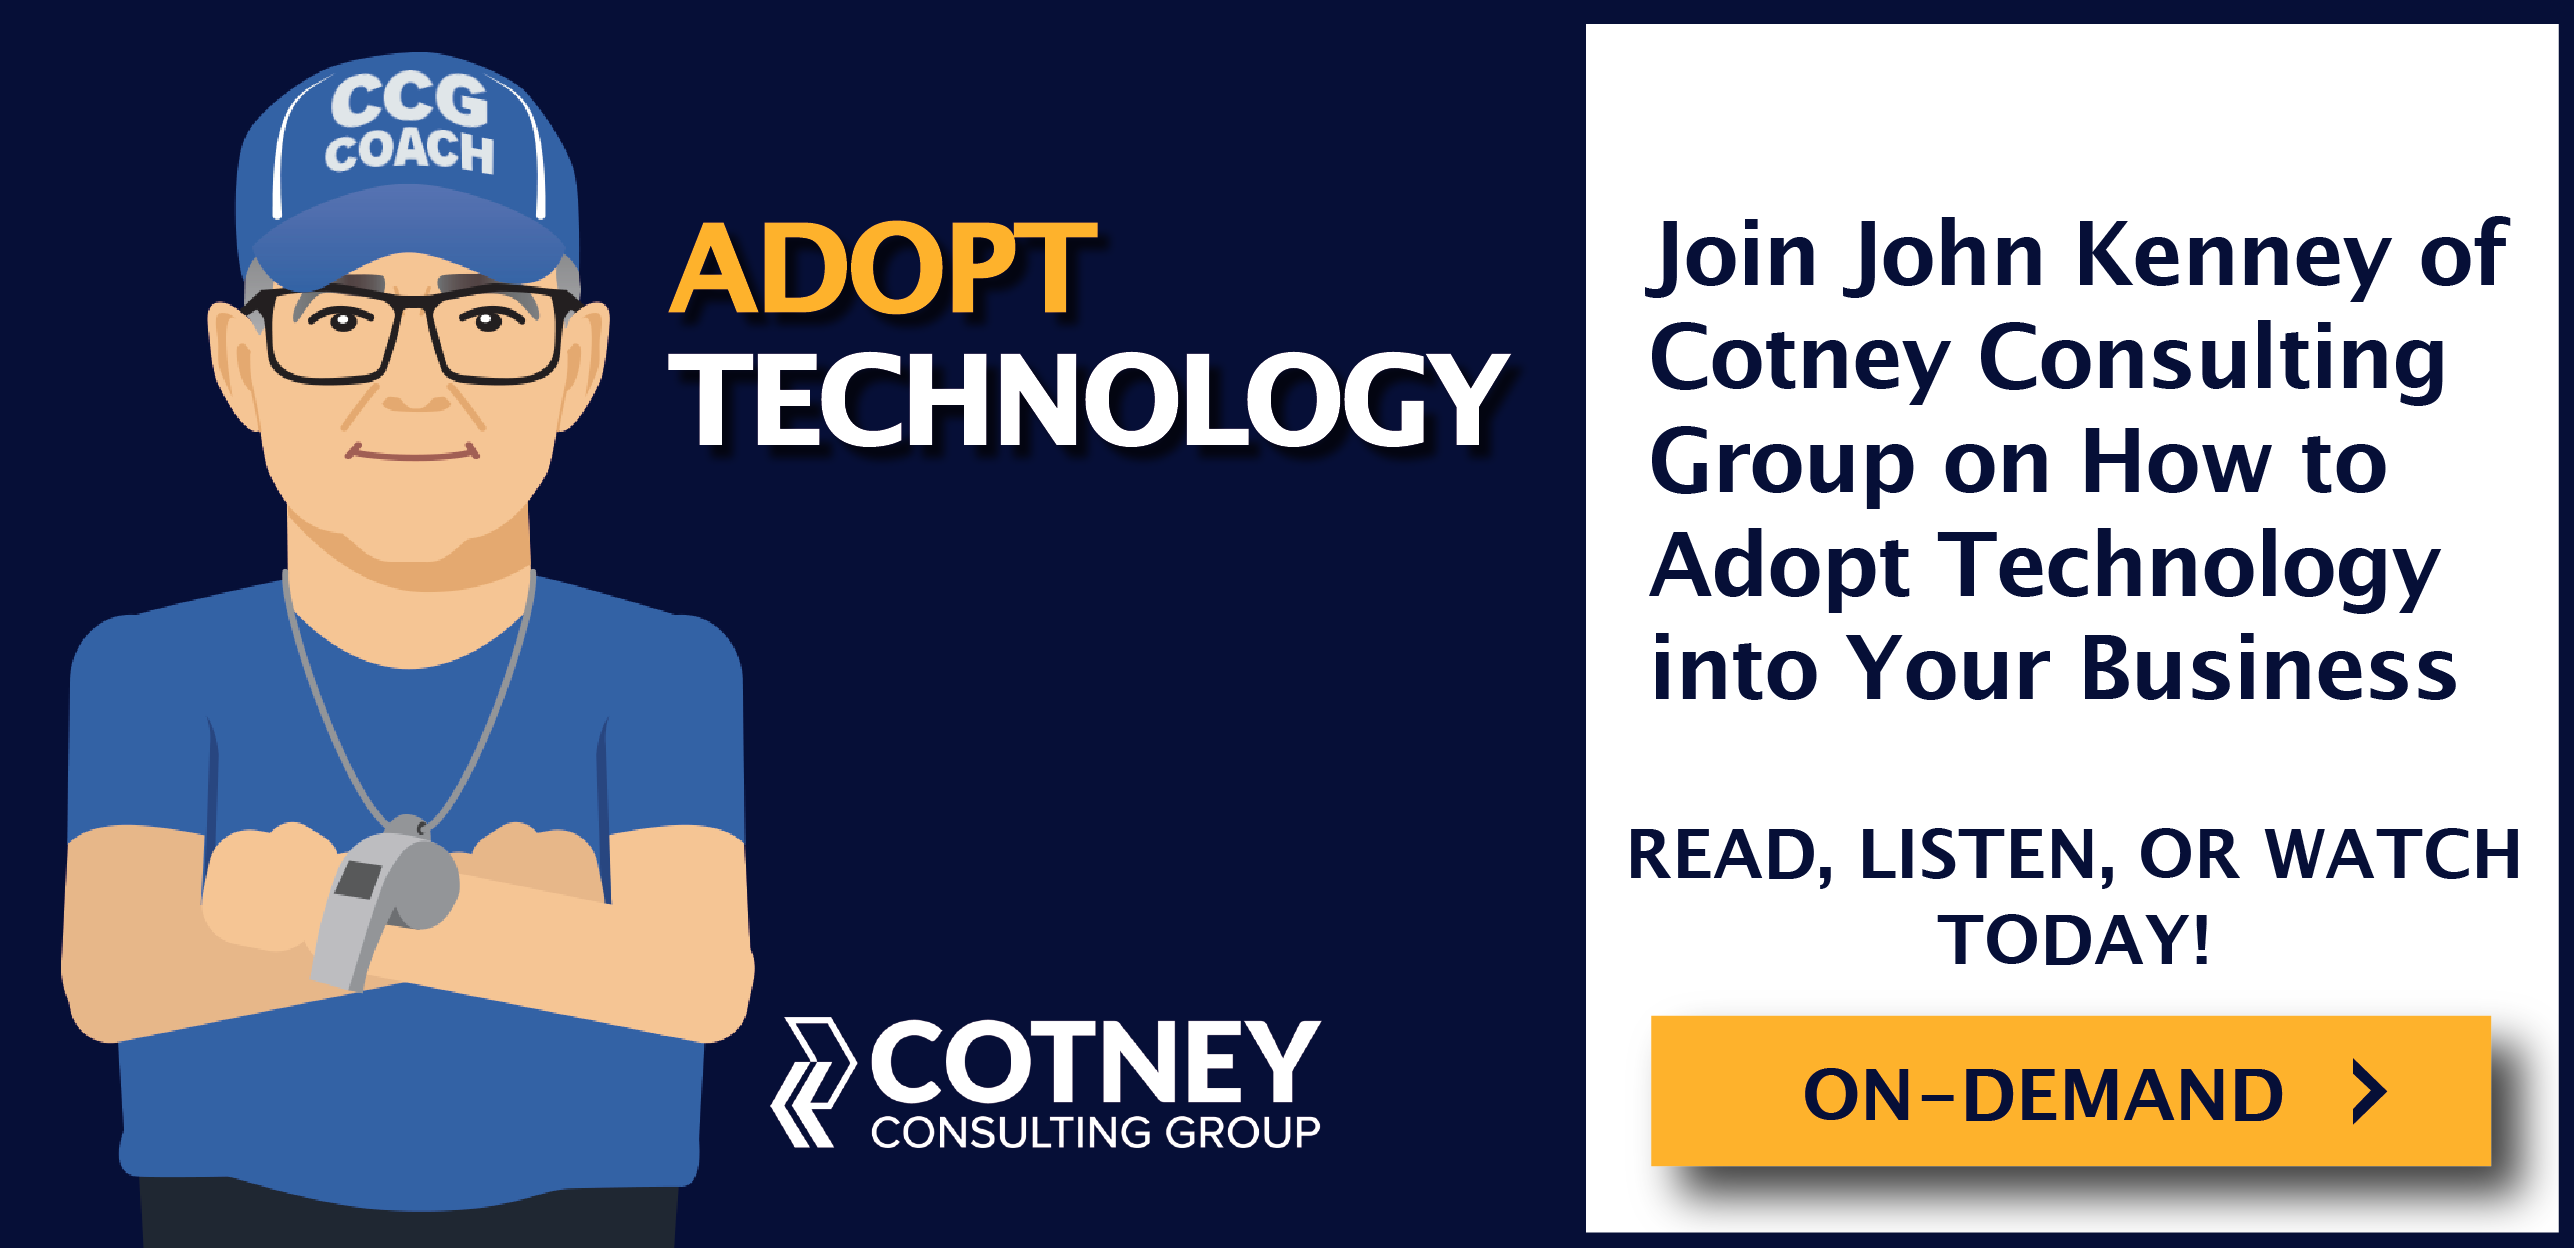 Cotney Consulting Group Adopt Technology